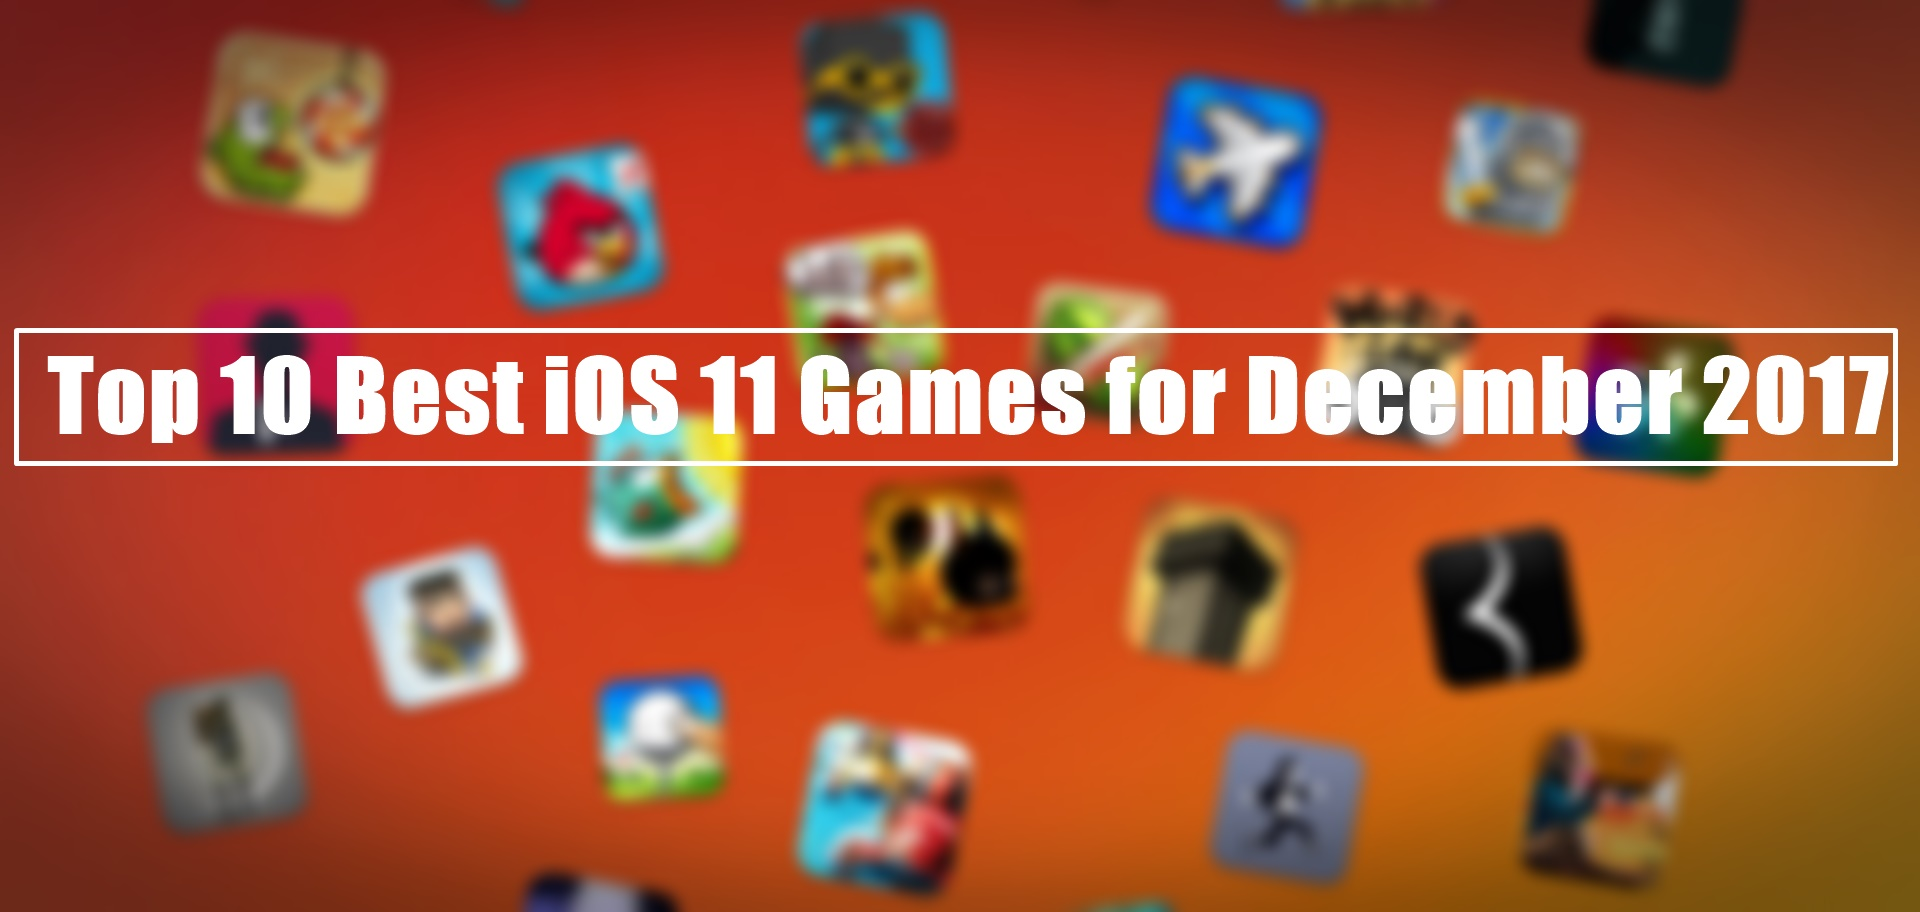 Top 10 Best iOS 11 Games for December 2017